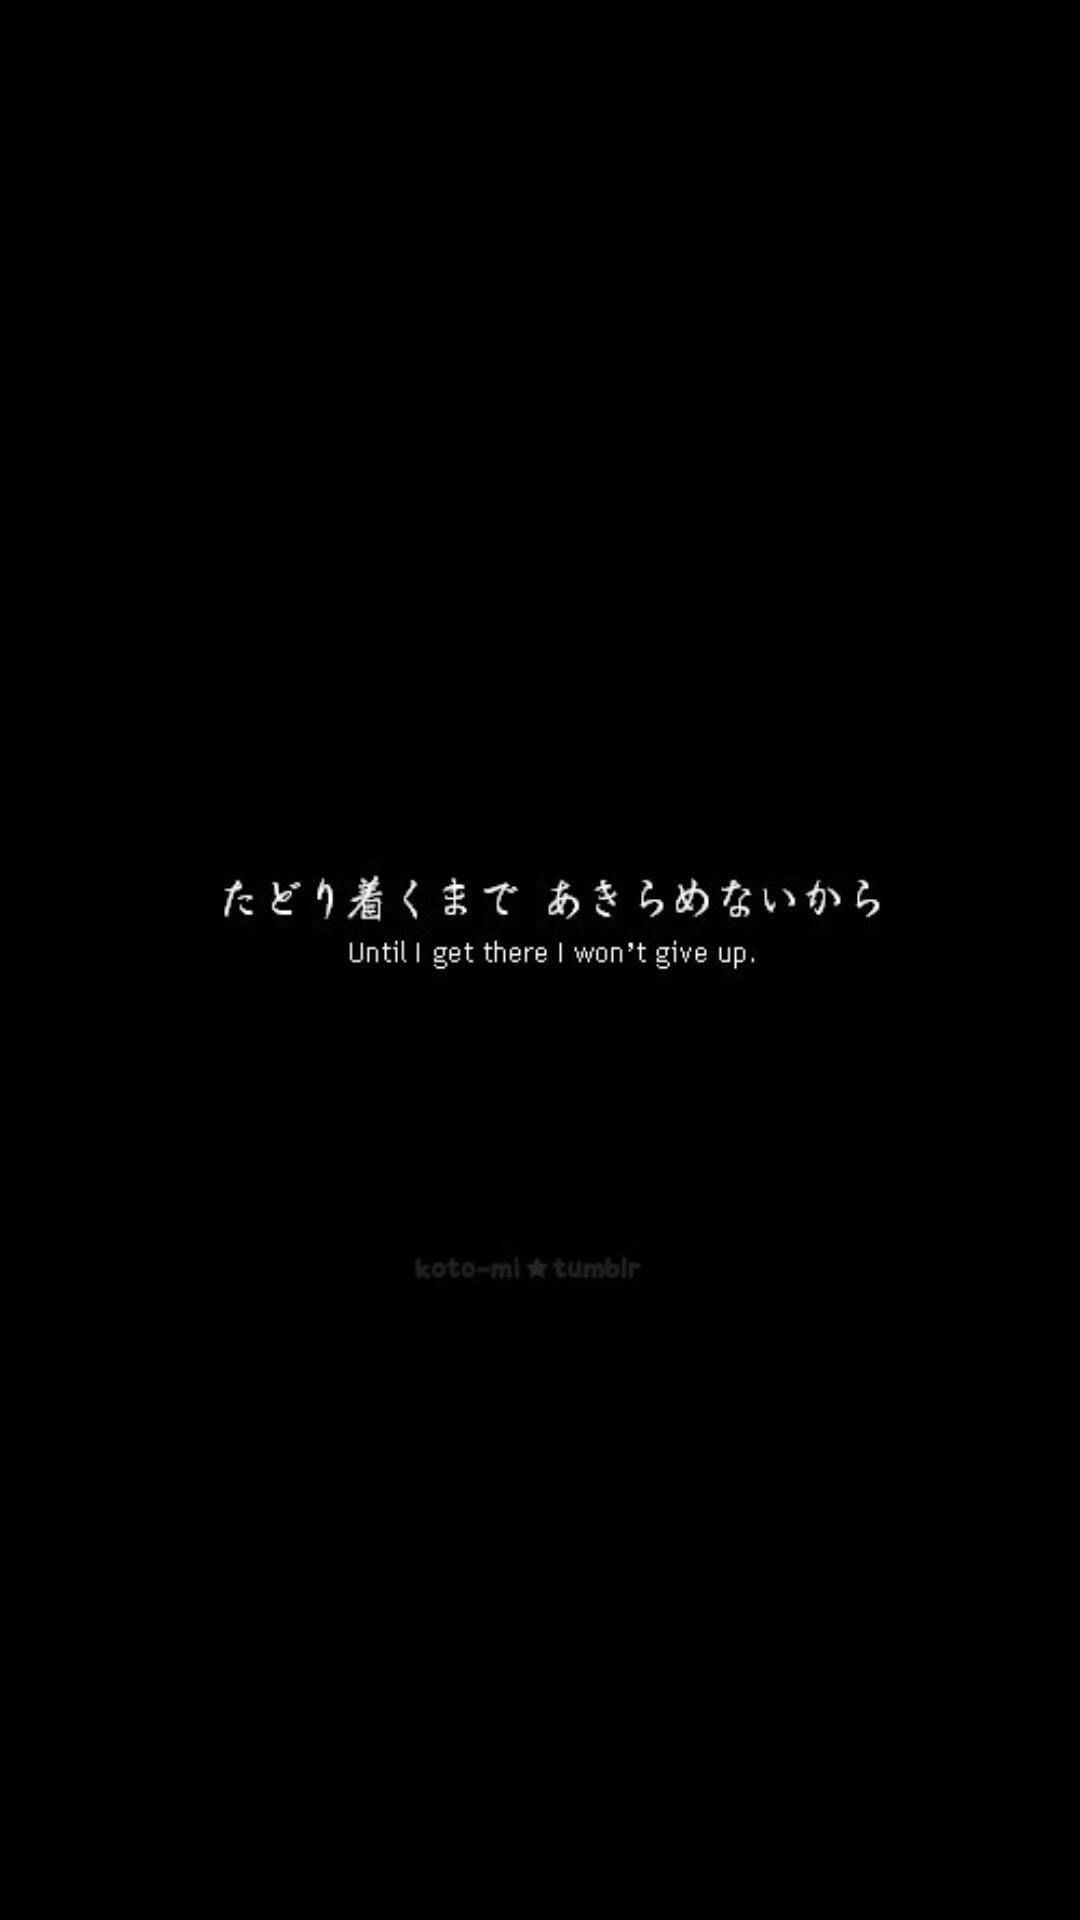 1080x1920 Yeah, I'll do everything | ART in 2019 | Japanese quotes ...